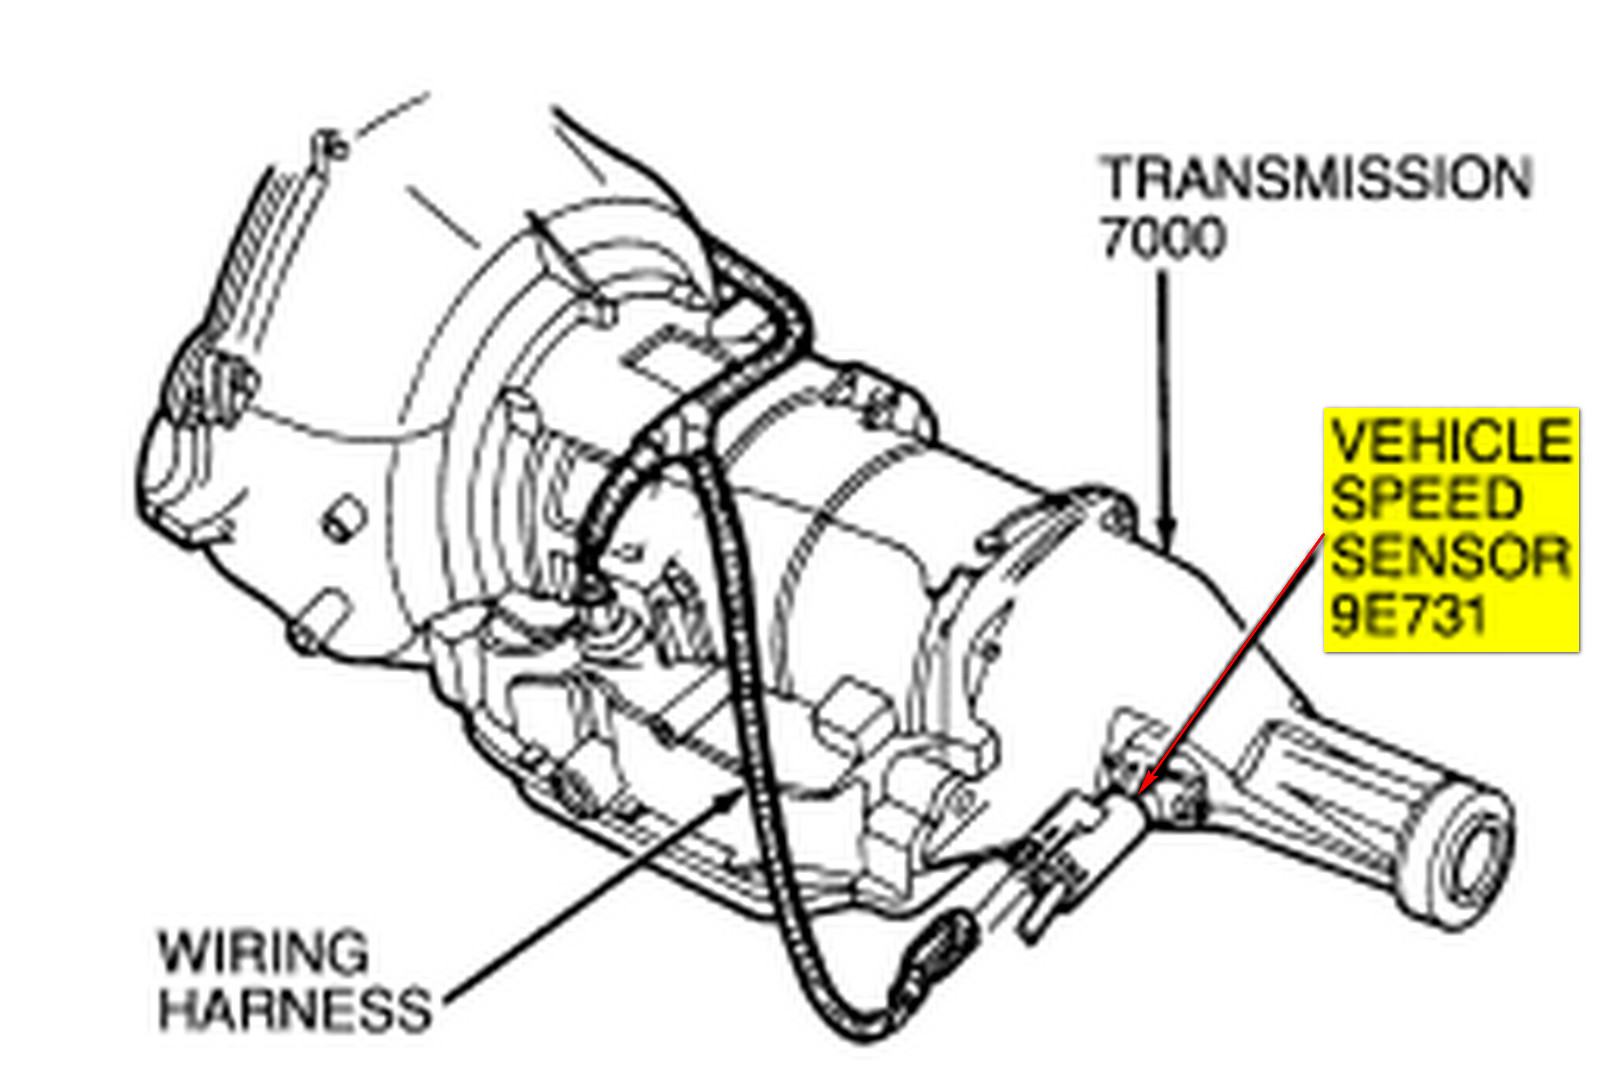 2000 Ford Taurus Spark Plug Wiring Diagram on 2000 ford windstar 3 8 firing order